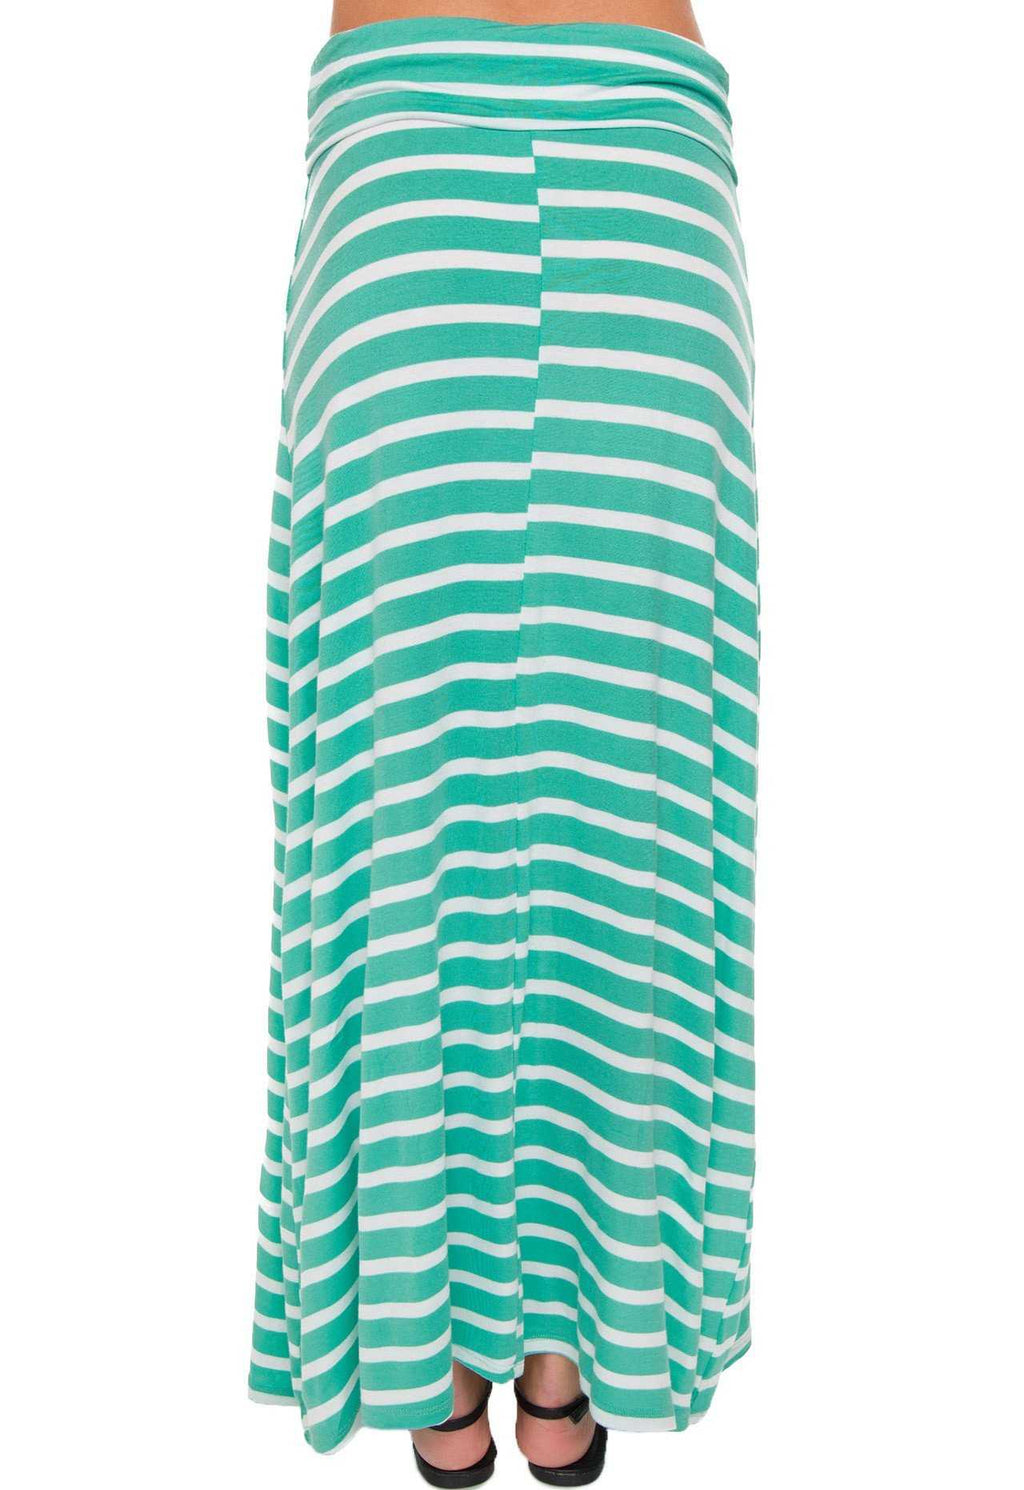 Skirts - Isobel Stripe Maxi Skirt - Mint